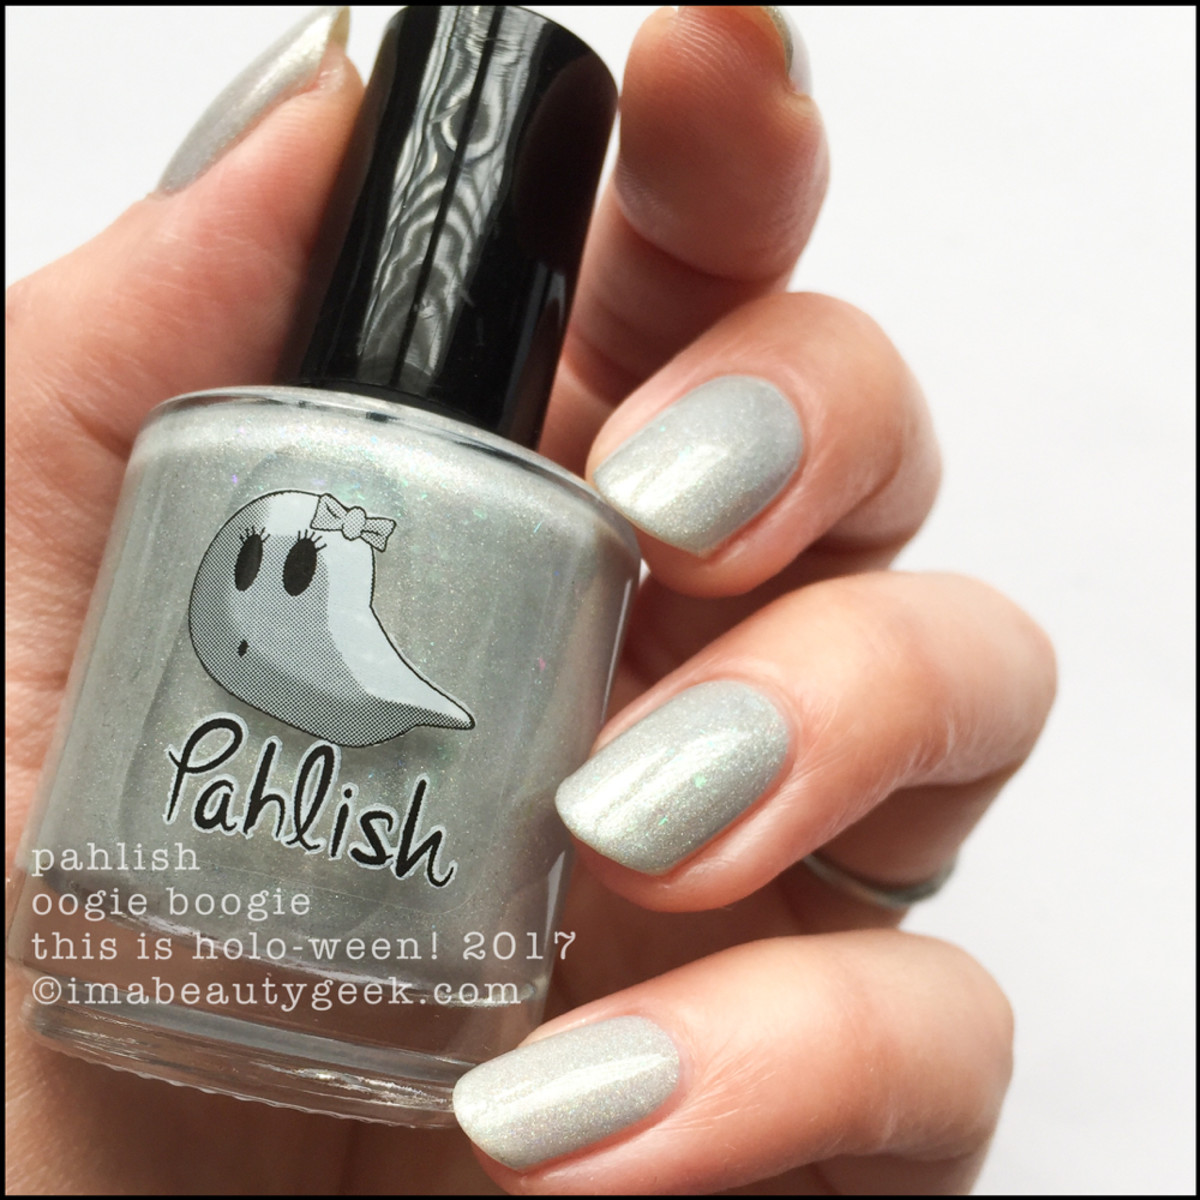 Pahlish Oogie Boogie - This is Holo-ween! 2017